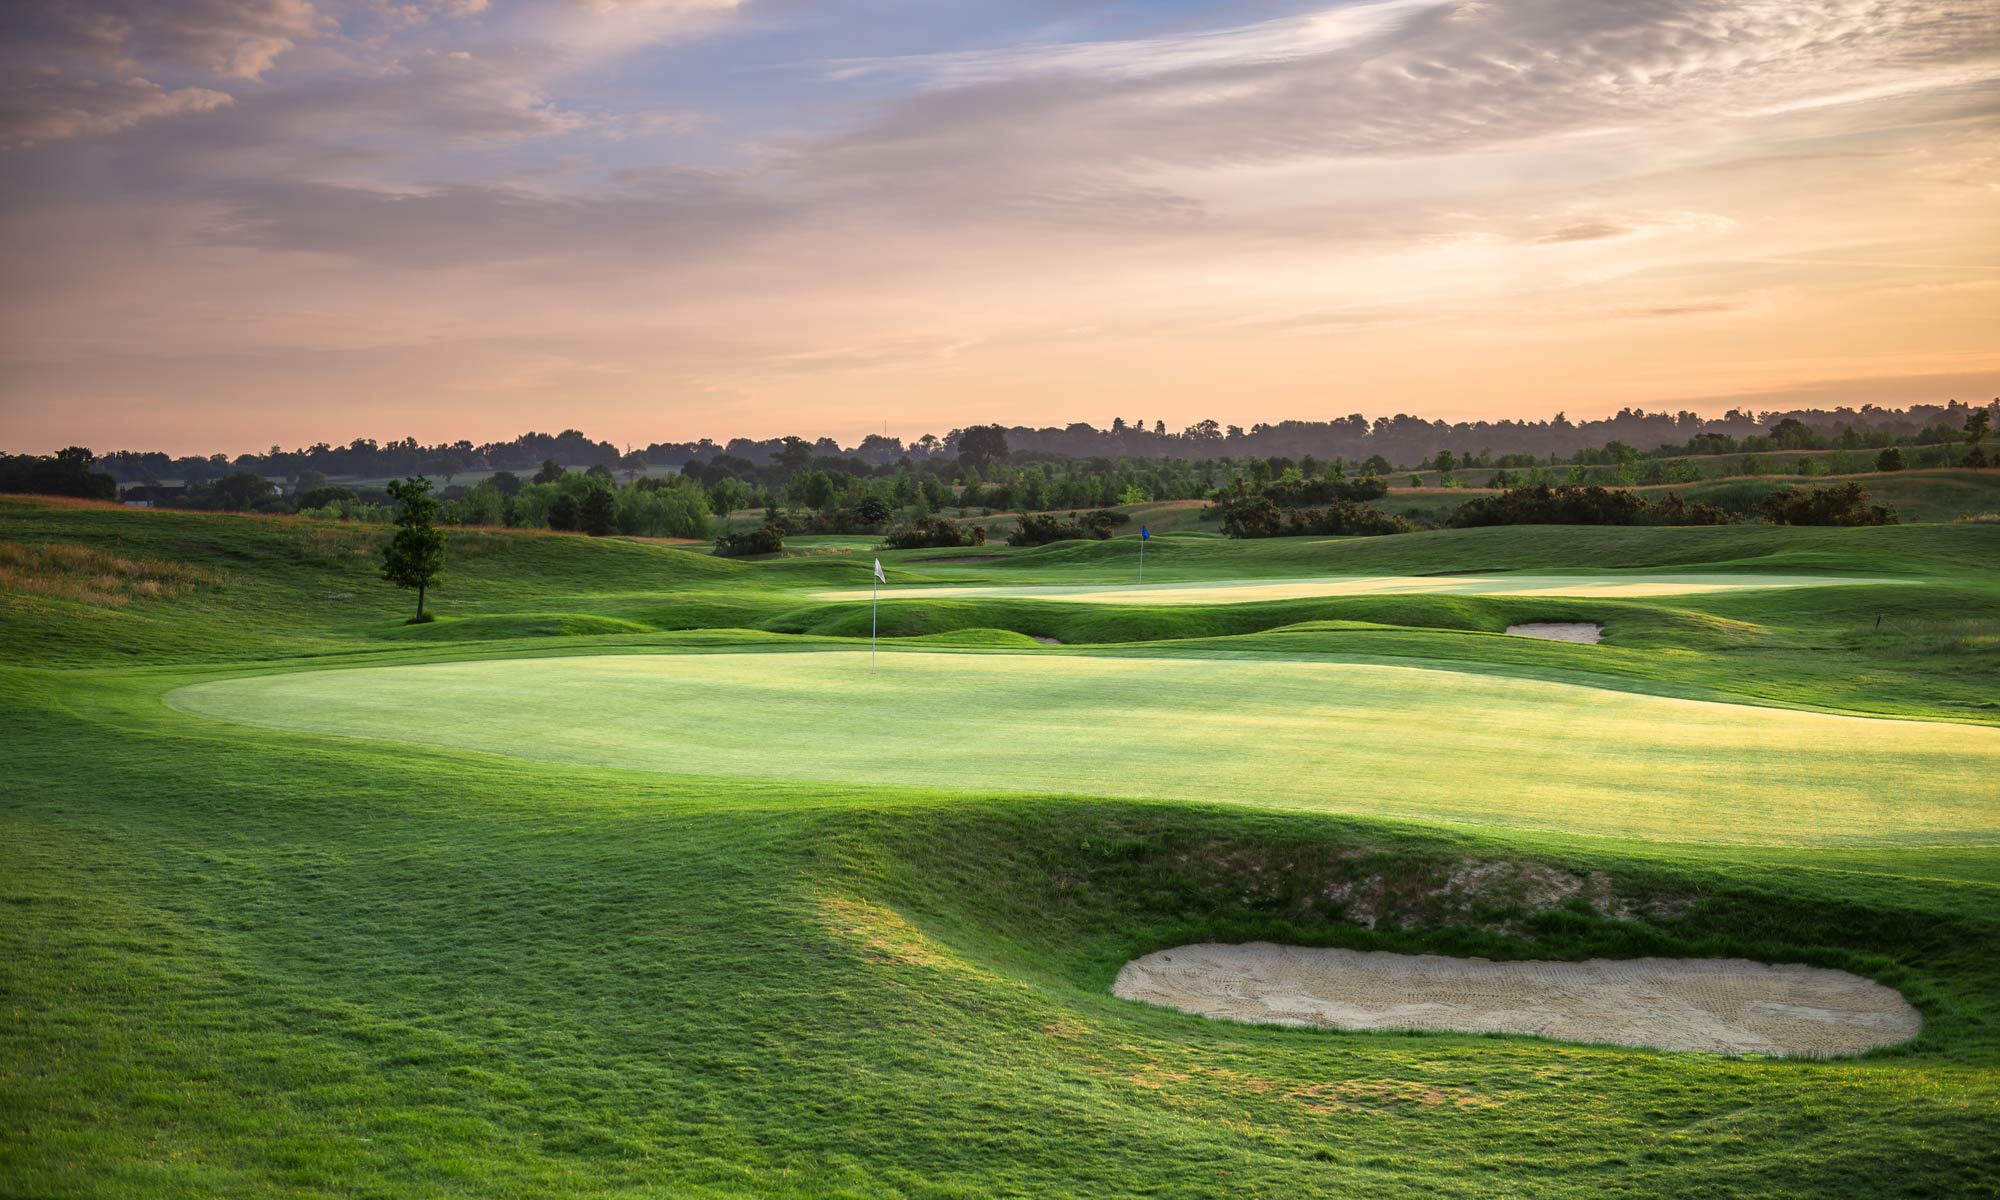 18 hole golf course at The Shire London